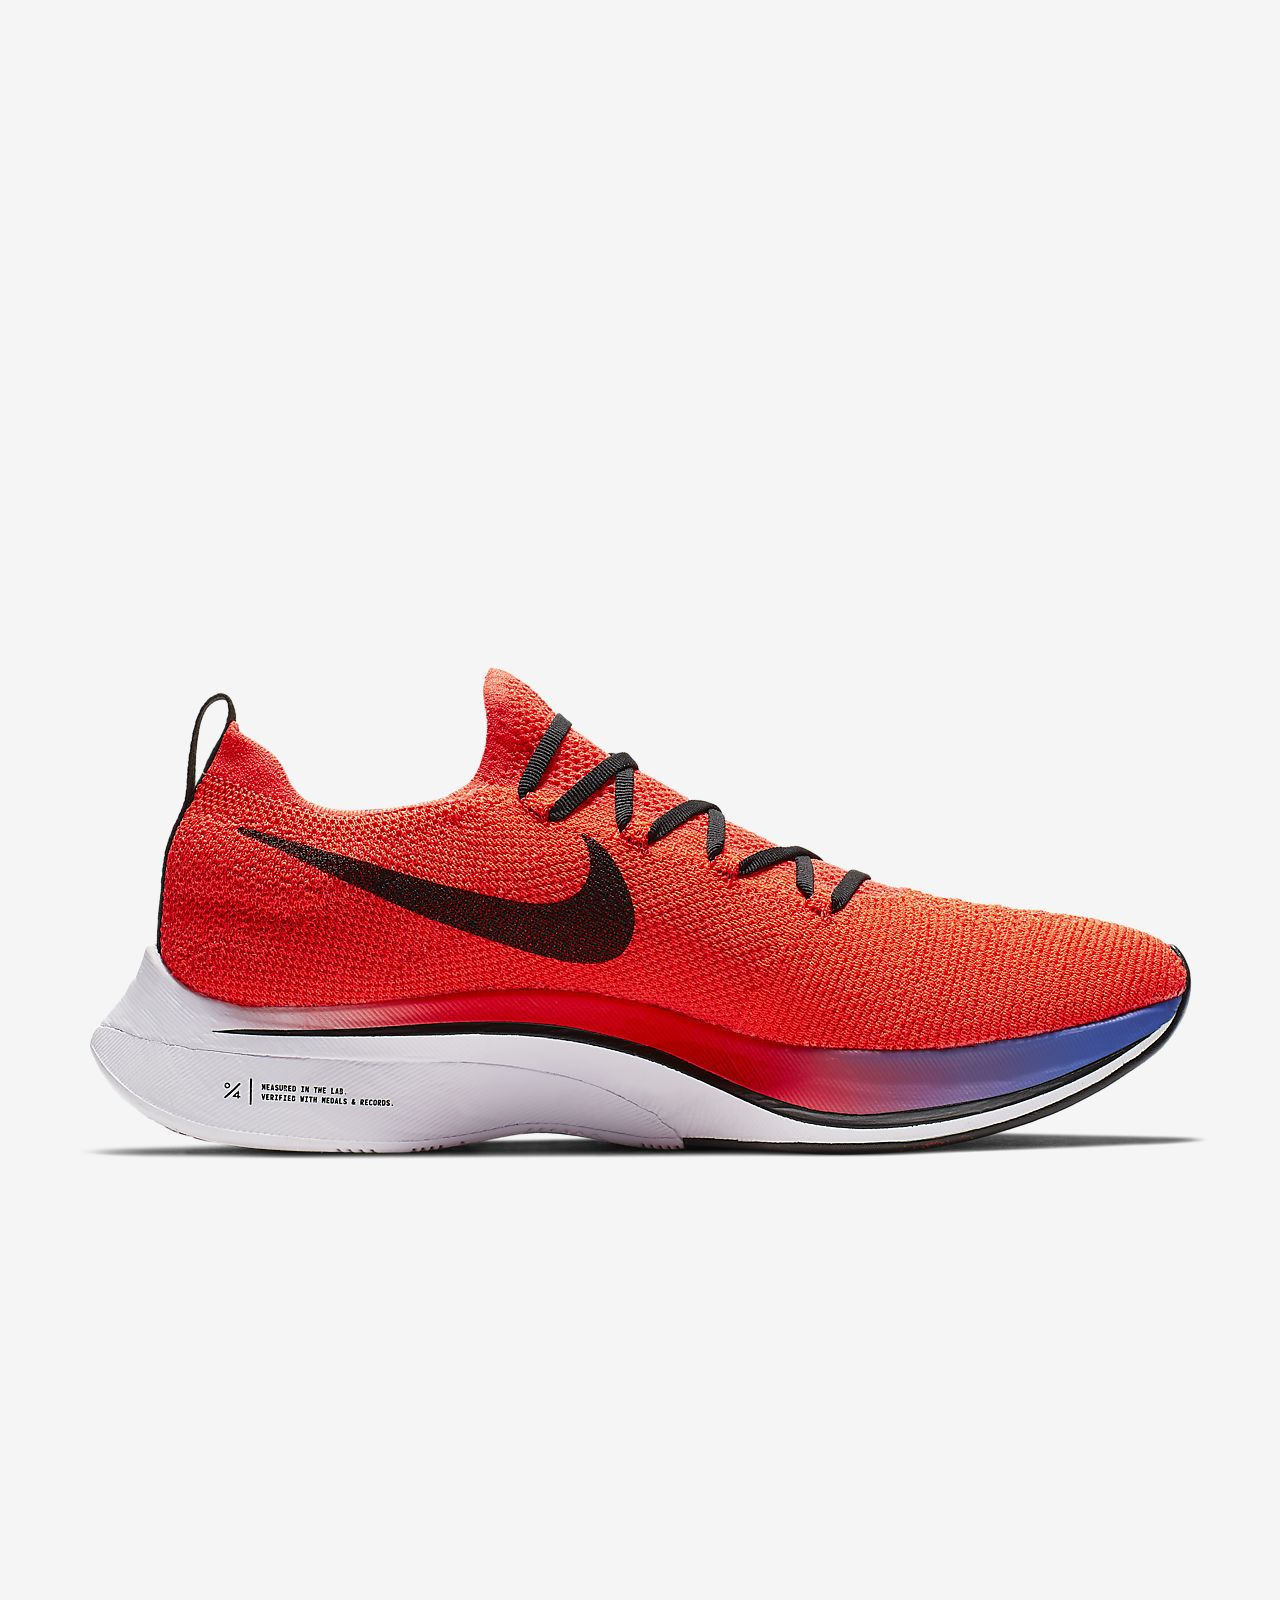 on sale 02b6c b44bf ... Nike Vaporfly 4% Flyknit Running Shoe